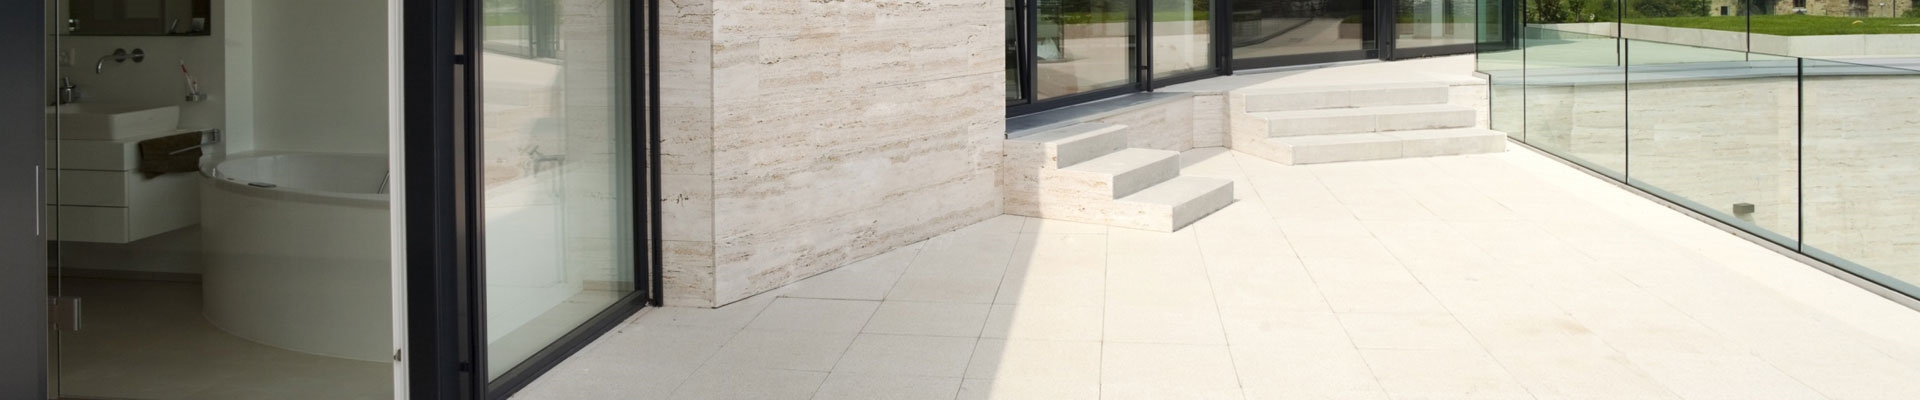 With our products you could keep your entrance areas